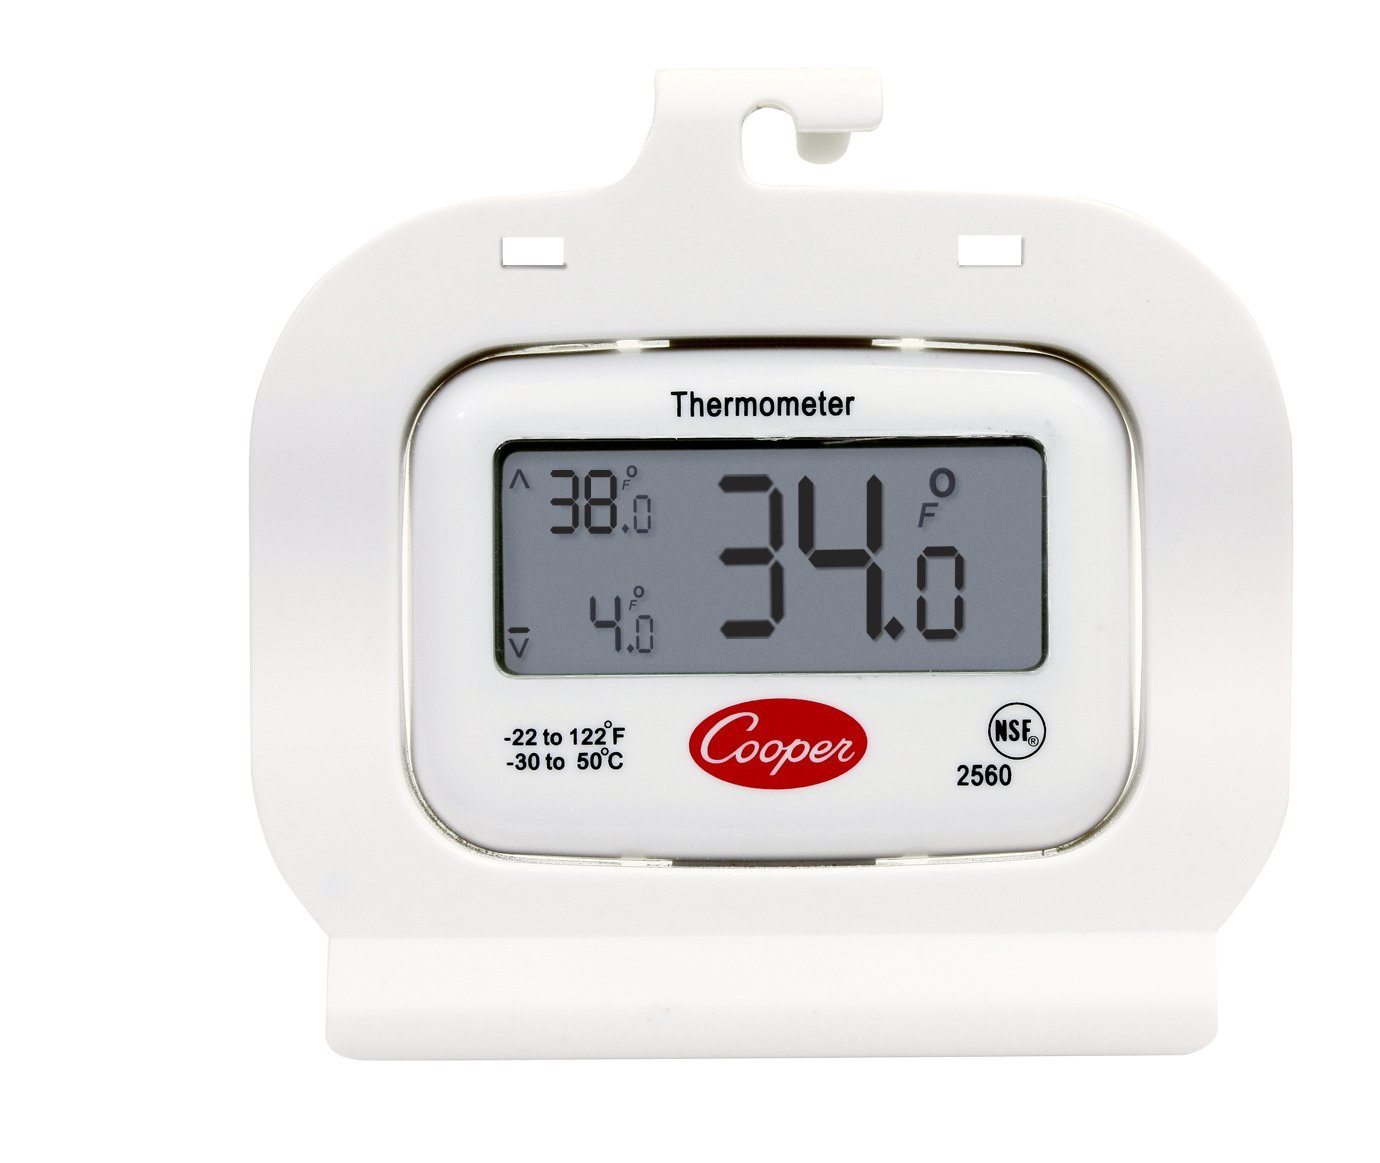 Cooper-Atkins 2560 Digital Thermometer, Refrigerator/Freezer, NSF -22 Degree F/122 Degree C